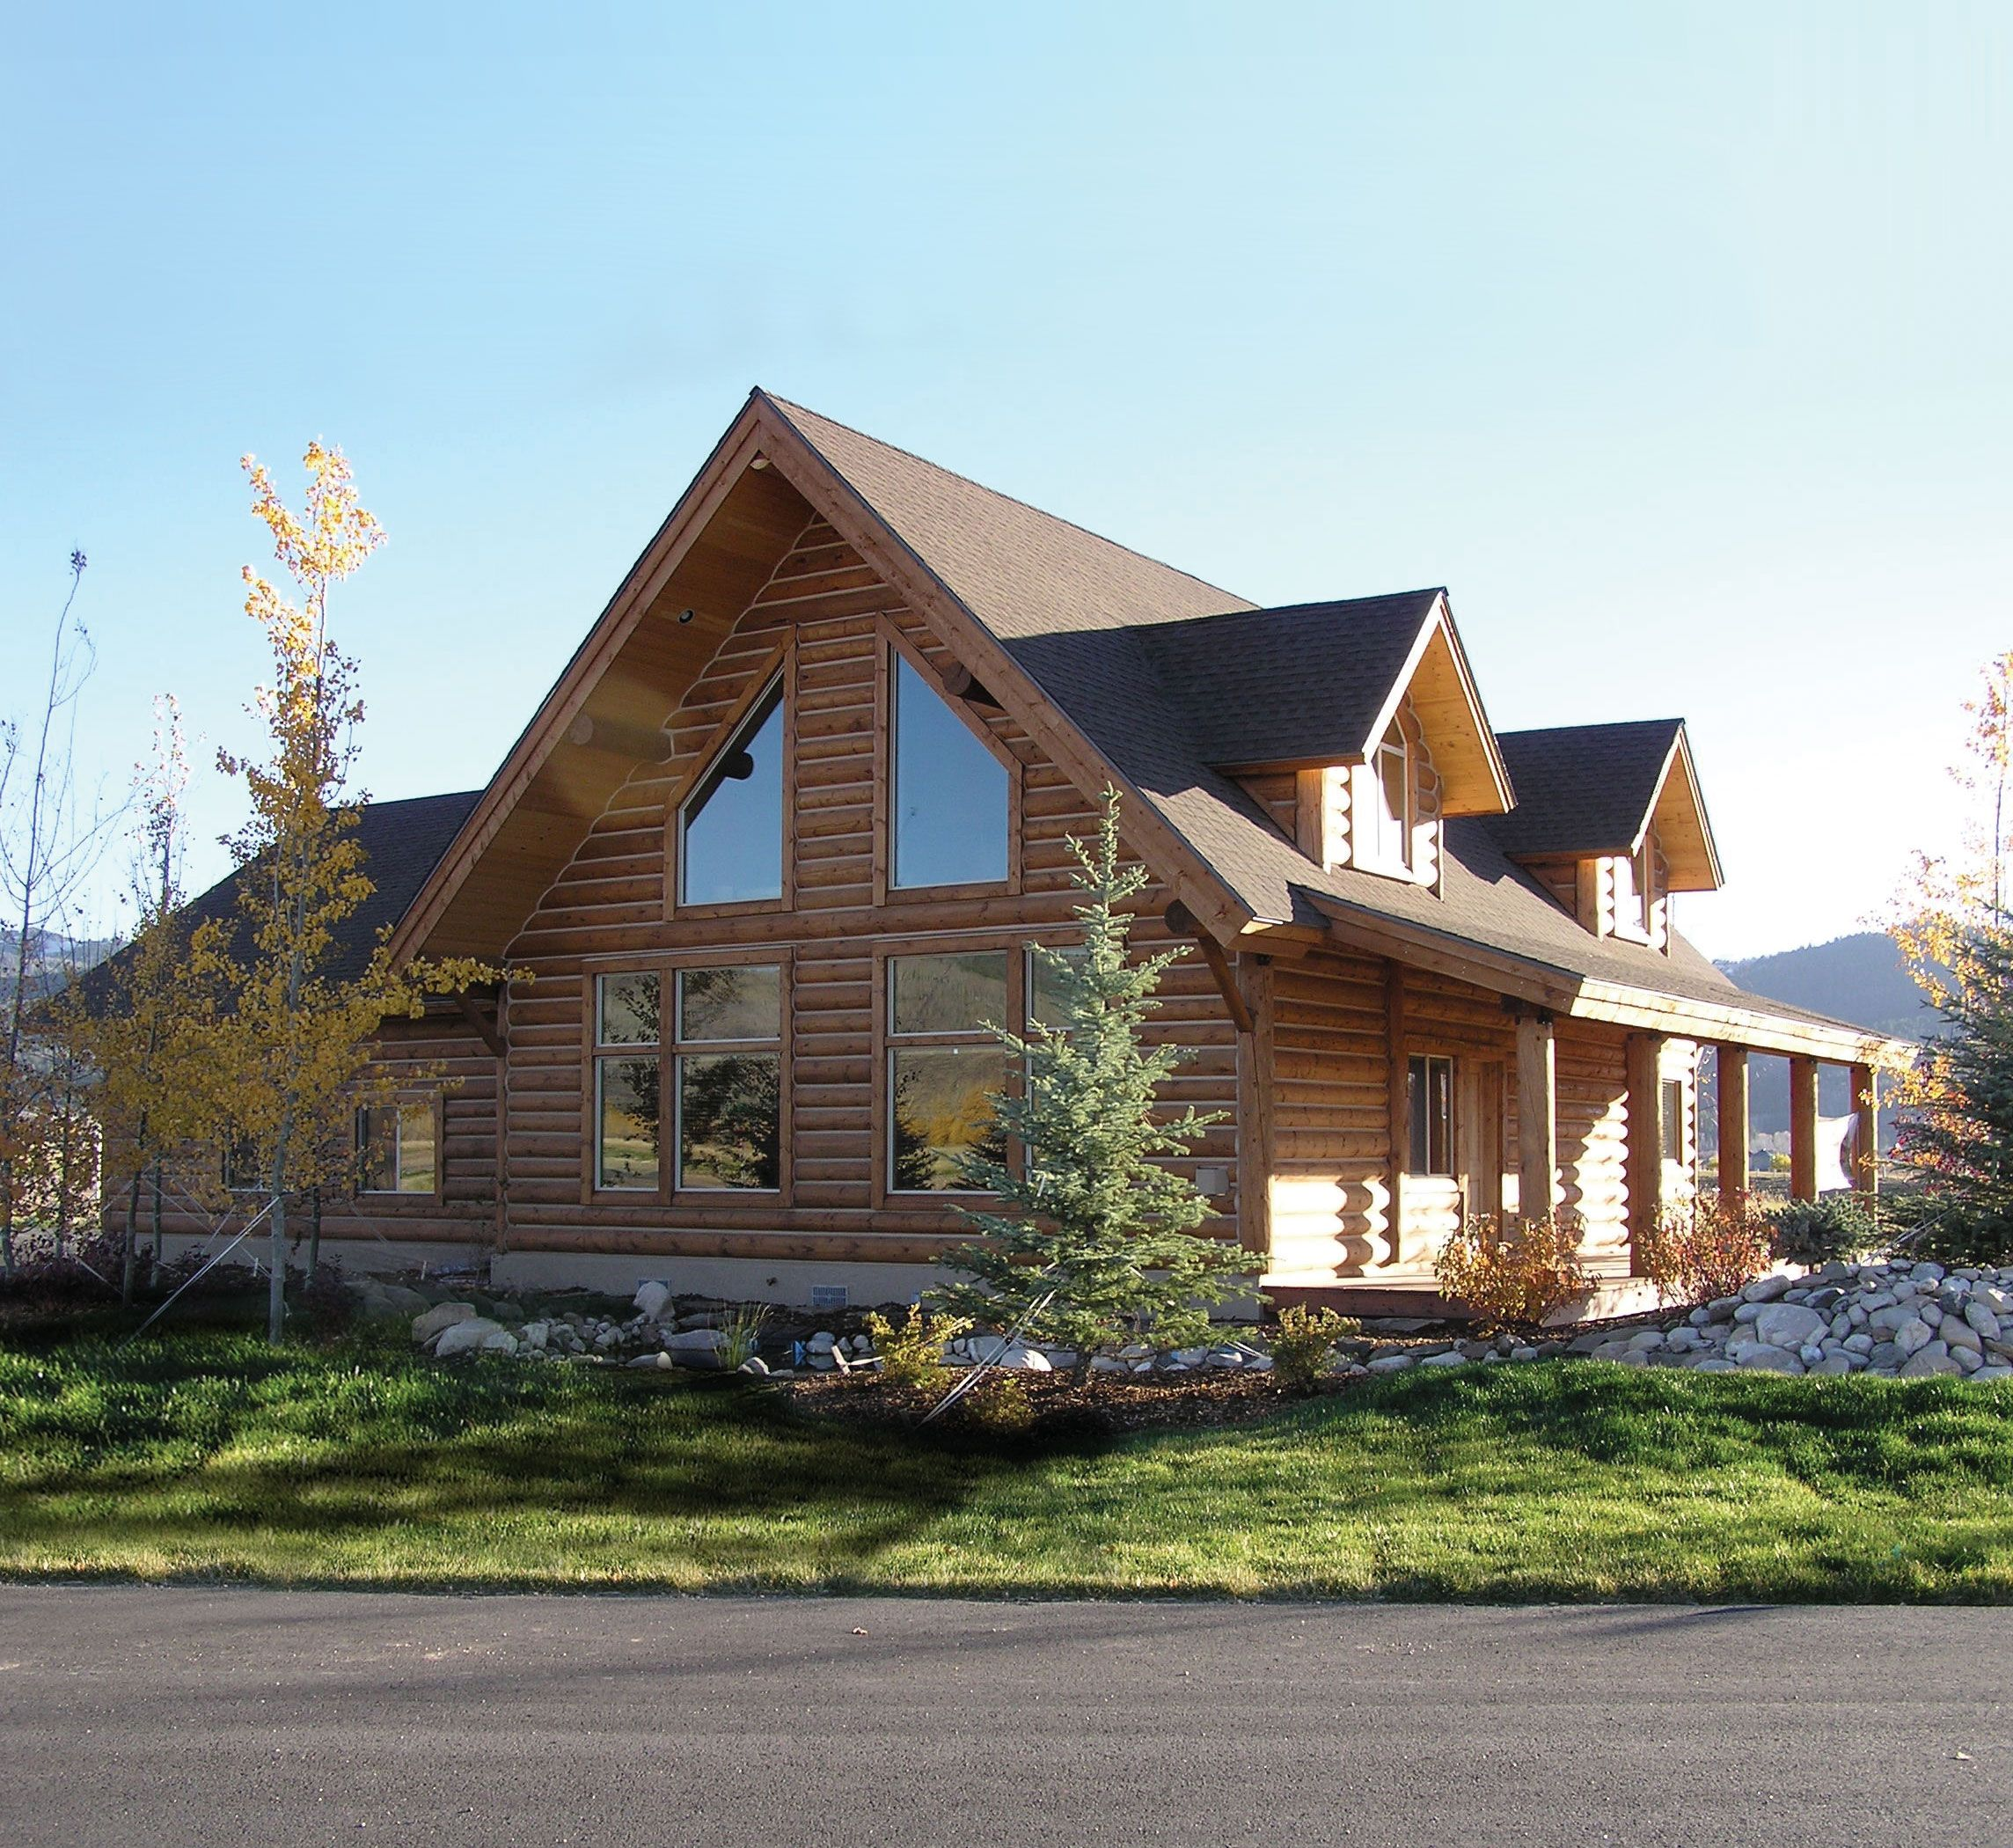 Photos Of Houses With Dormers And Attached Garages Log Homes Log Home Floorplans Ca Log Home Plans Ca Ca Log Hom Log Home Plans Log Homes Log Home Builders